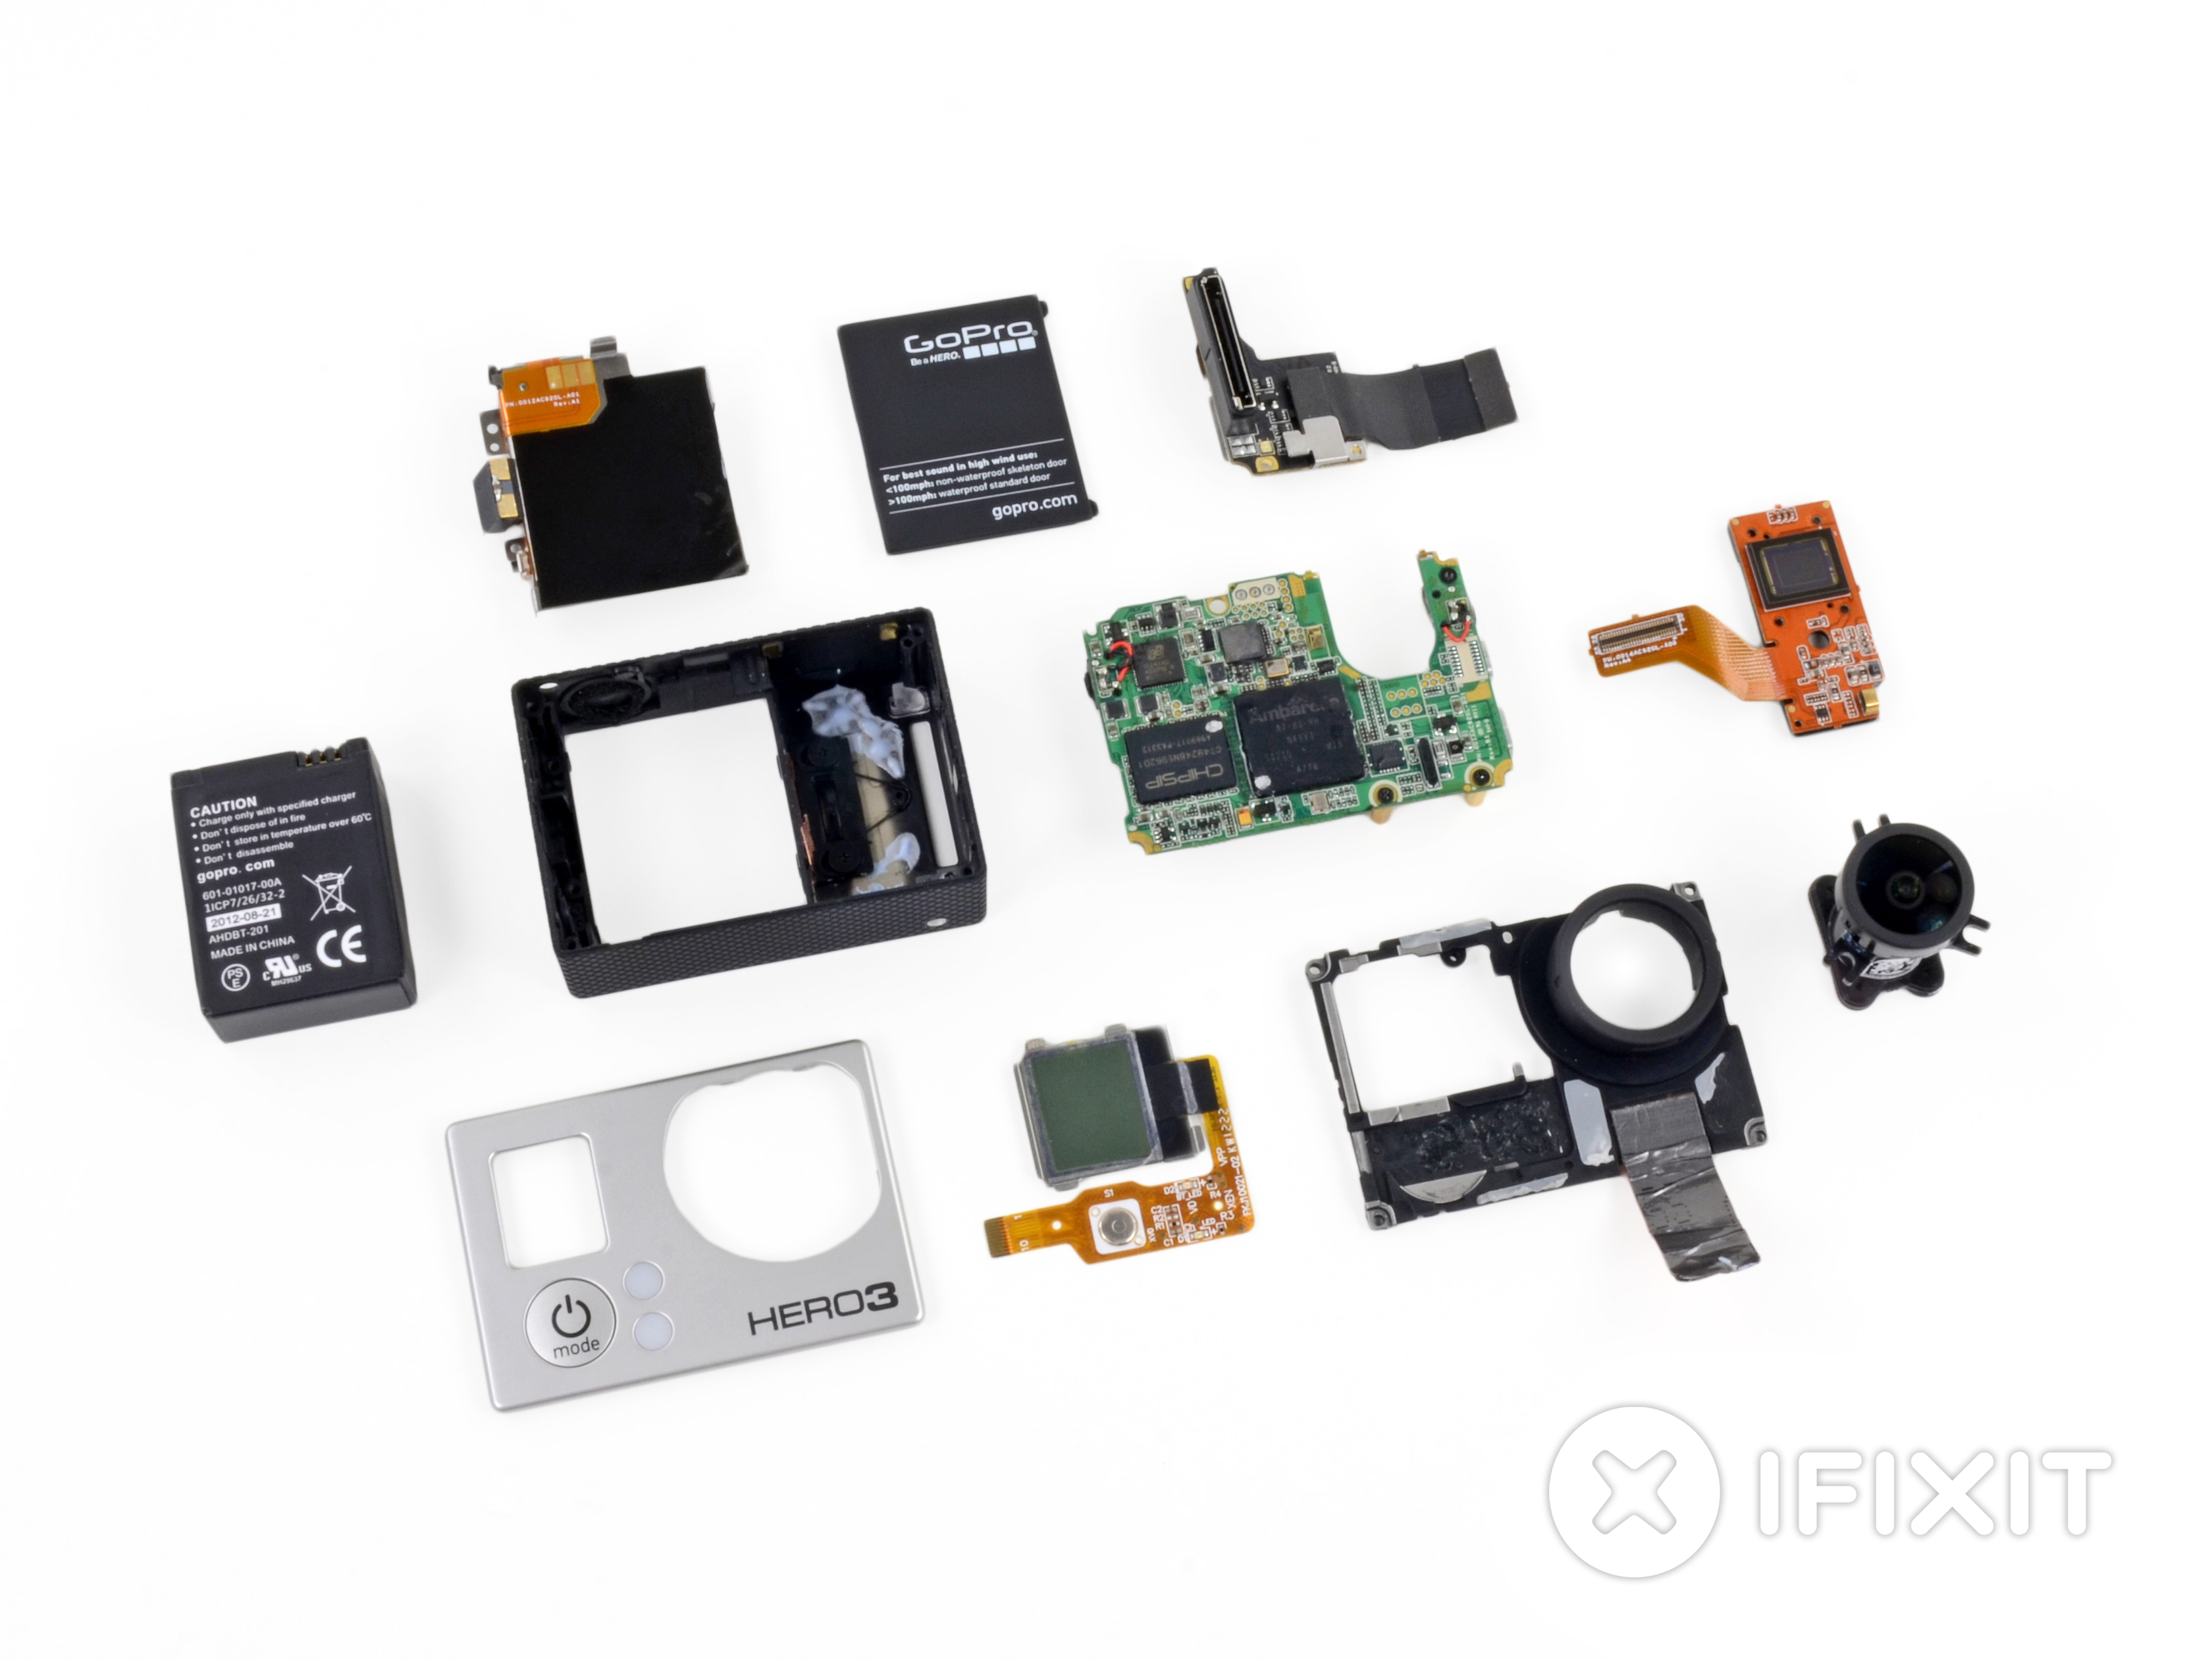 gopro hero3 teardown ifixit rh ru ifixit com GoPro Hero 3 Black GoPro Hero 3 Black